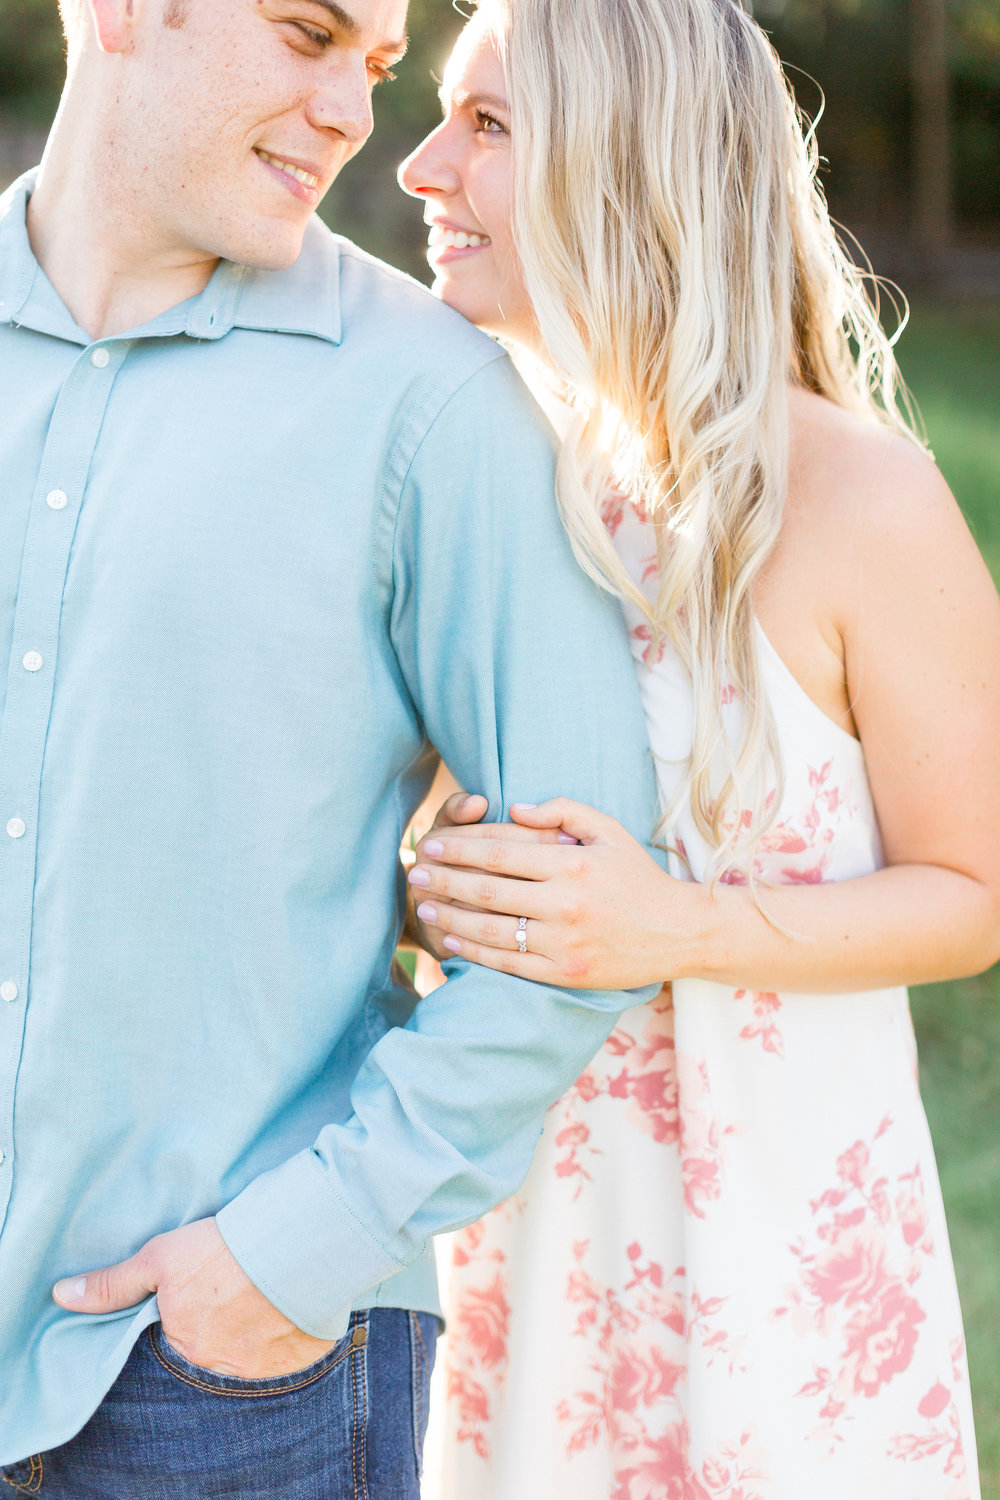 bywater-hollow-lavendar-farm-engagement-photography (22 of 155).jpg